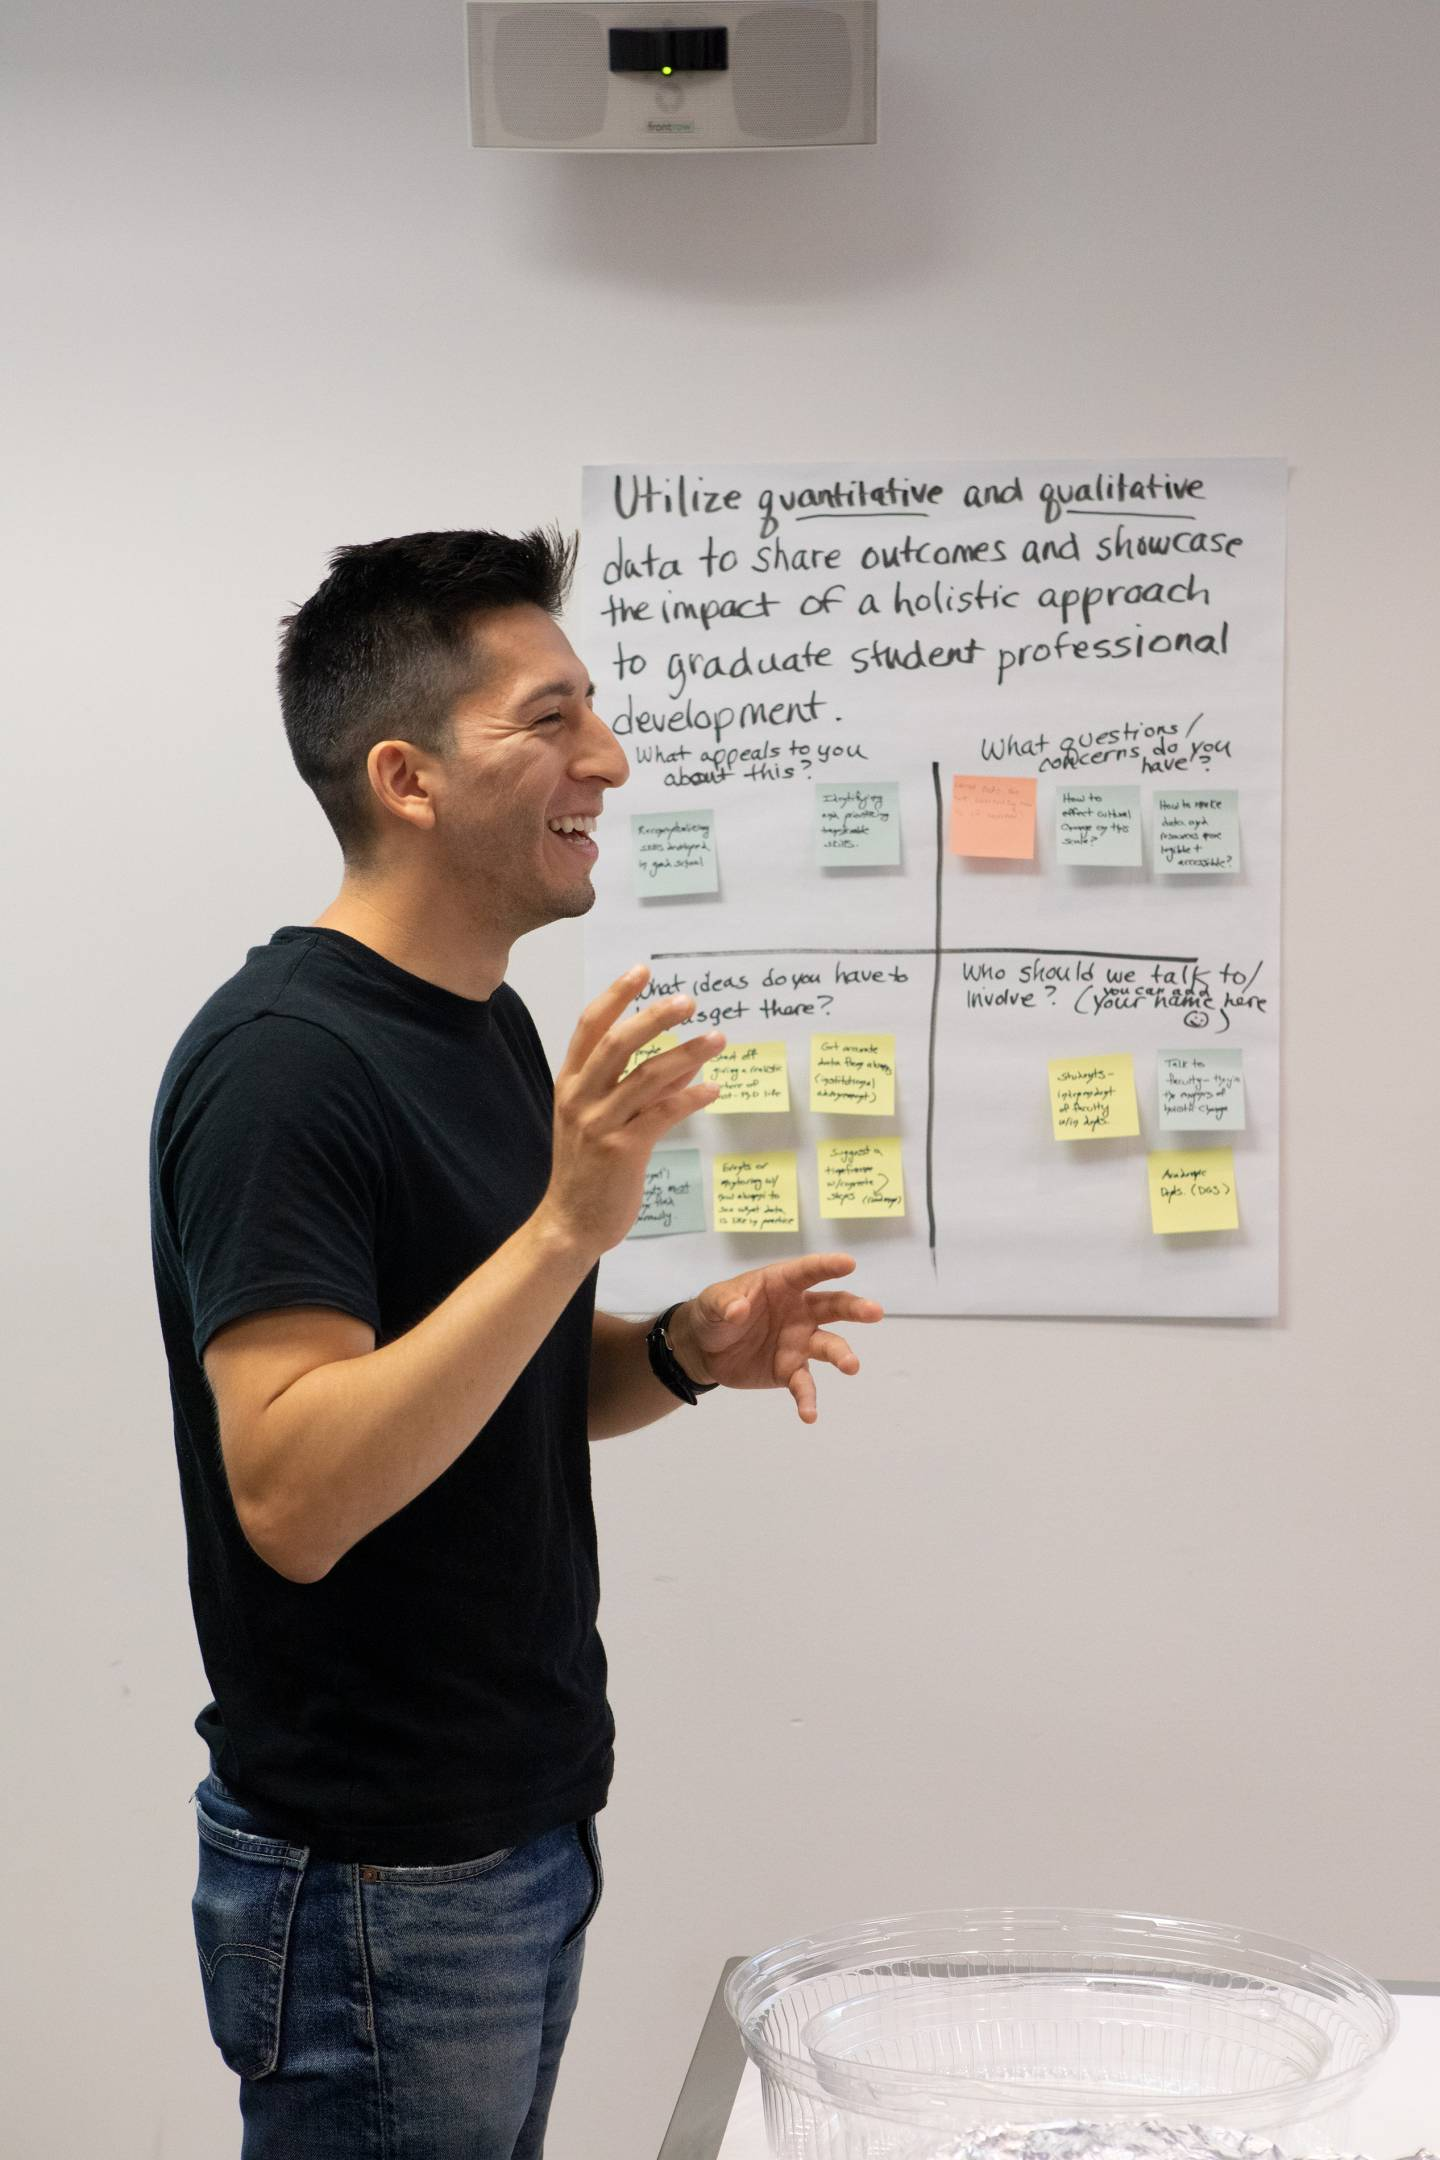 A student gesticulates and speaks with a handwritten chart in the background